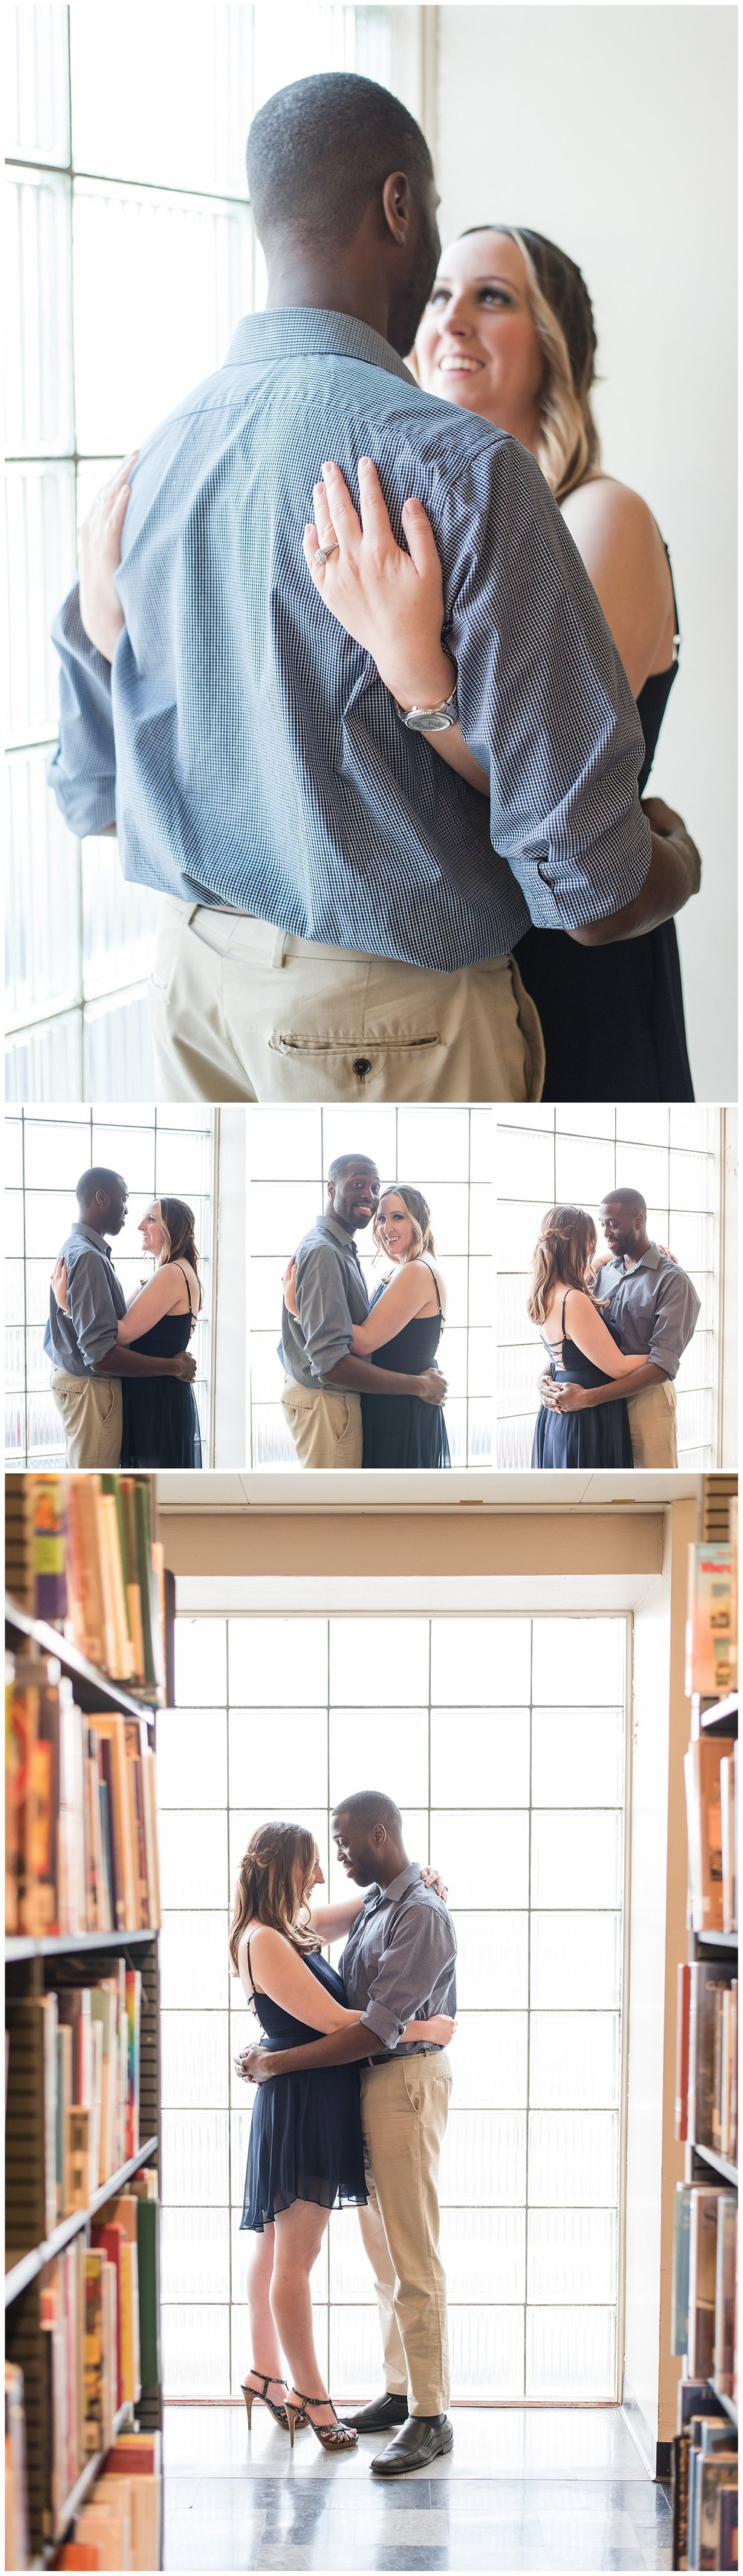 Rhode Island Engagement Photographer